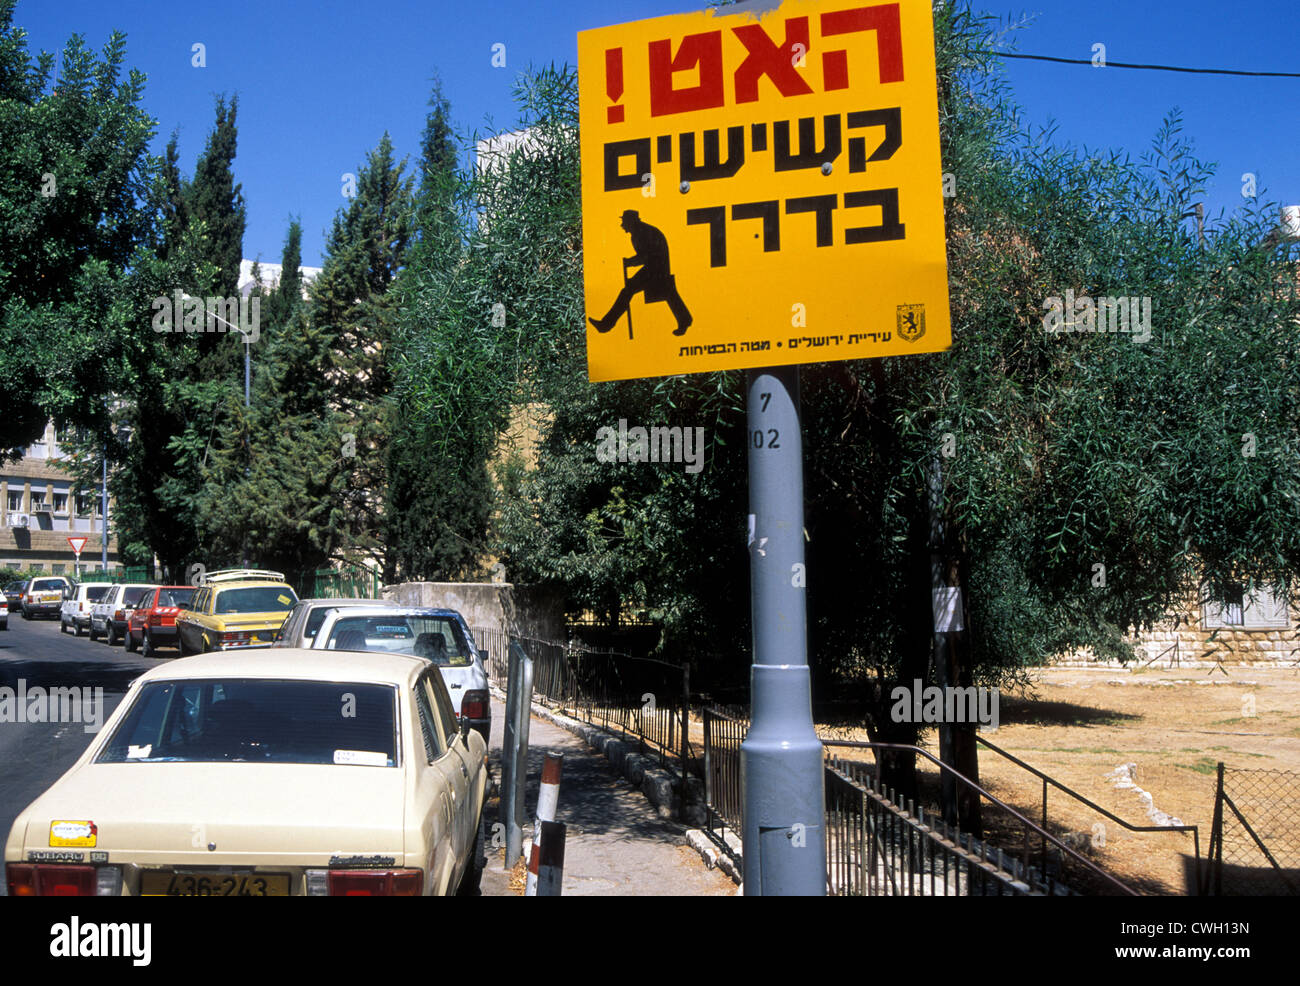 Pedestrian crossing in the Orthodox Jewish area of West Jerusalem - Stock Image